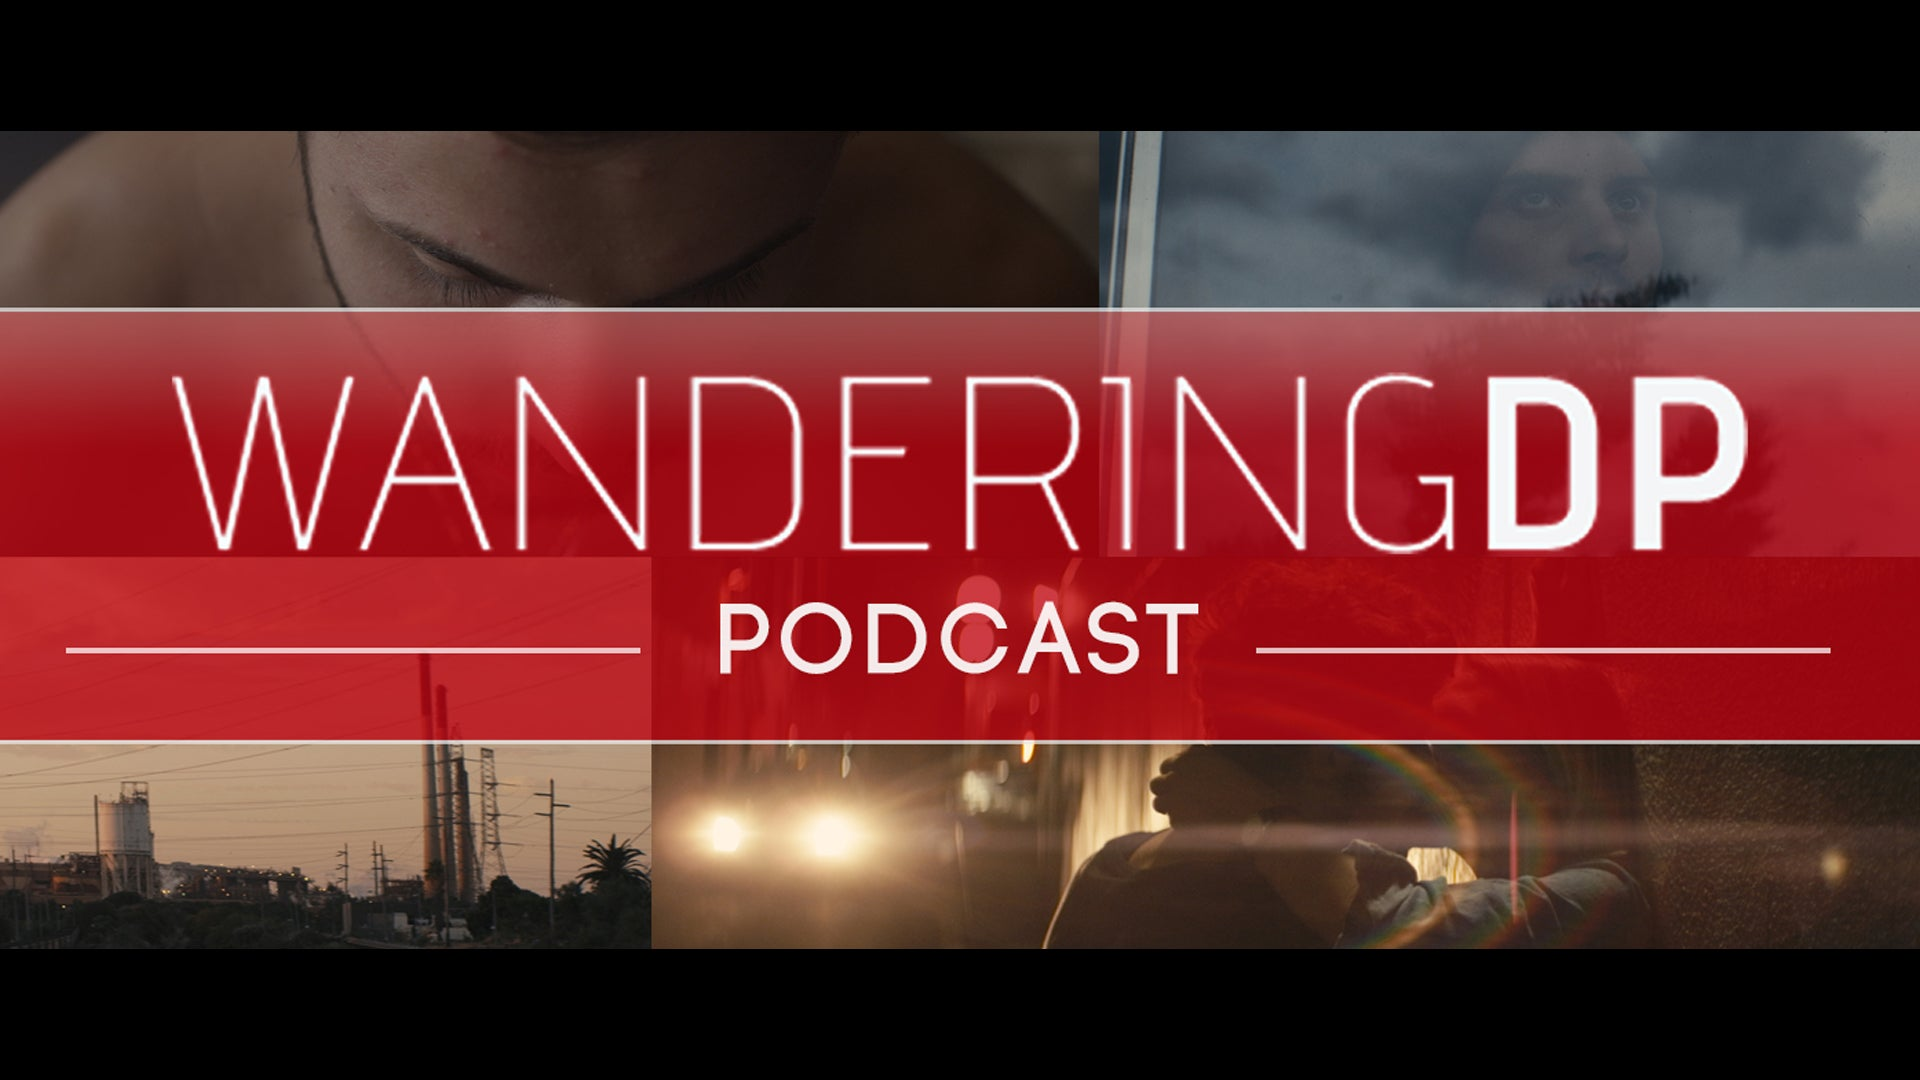 The Wandering DP Podcast: Episodes #11 - #20